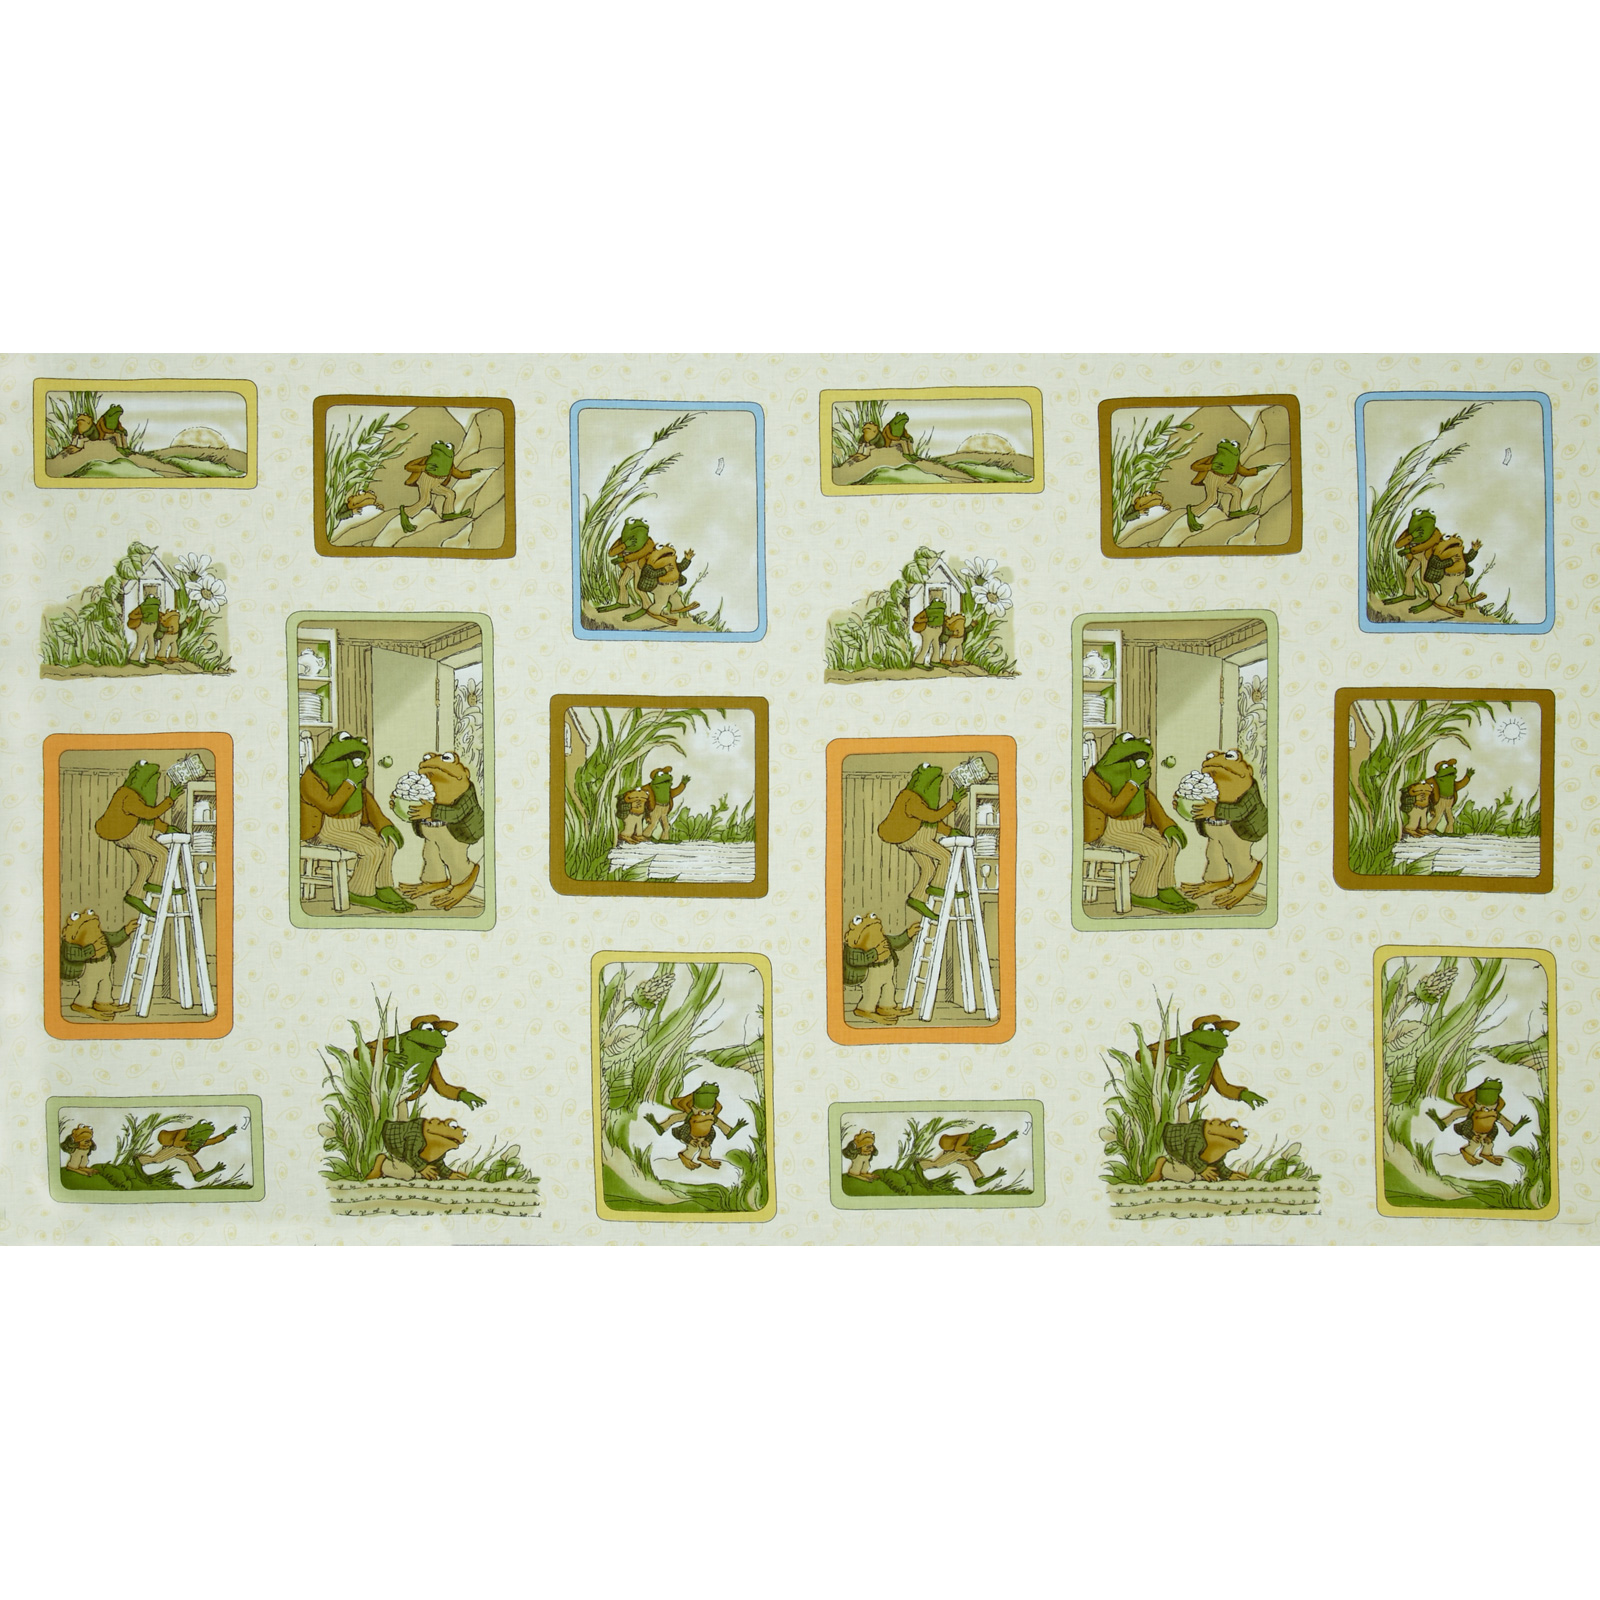 Frog and Toad Together Block Panel Cream Fabric